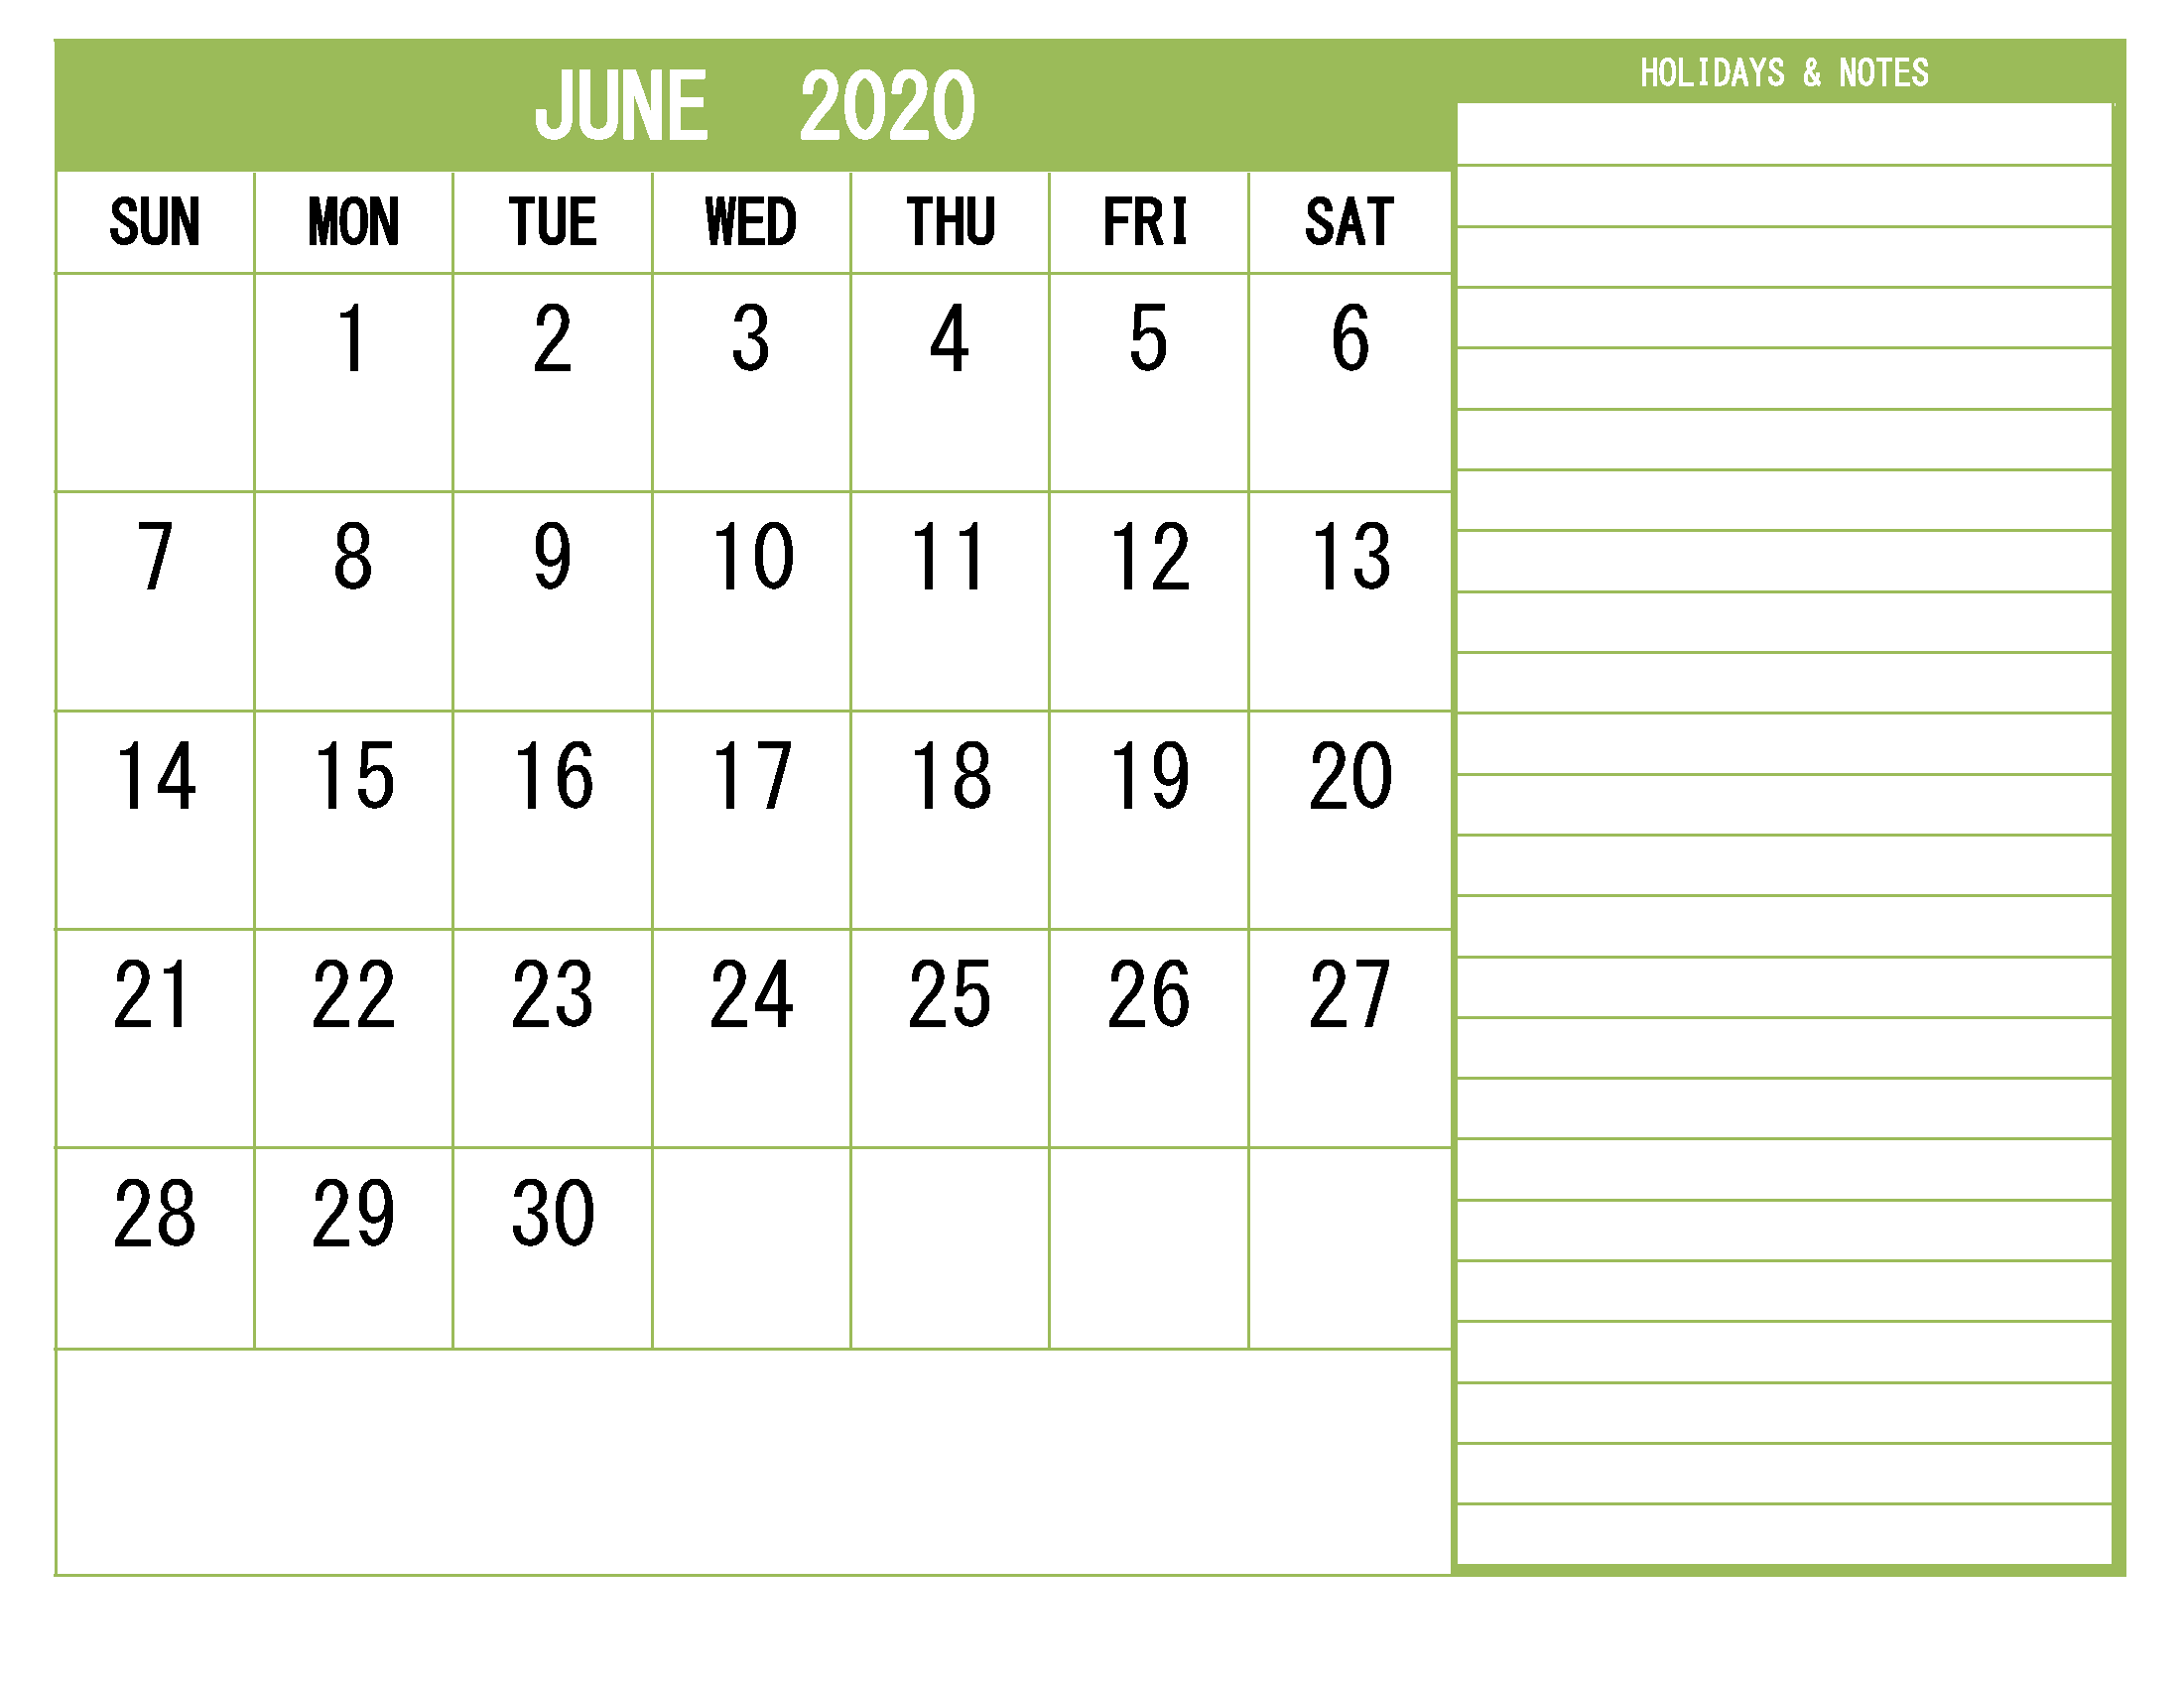 June 2020 Calendar With Holidays Printable